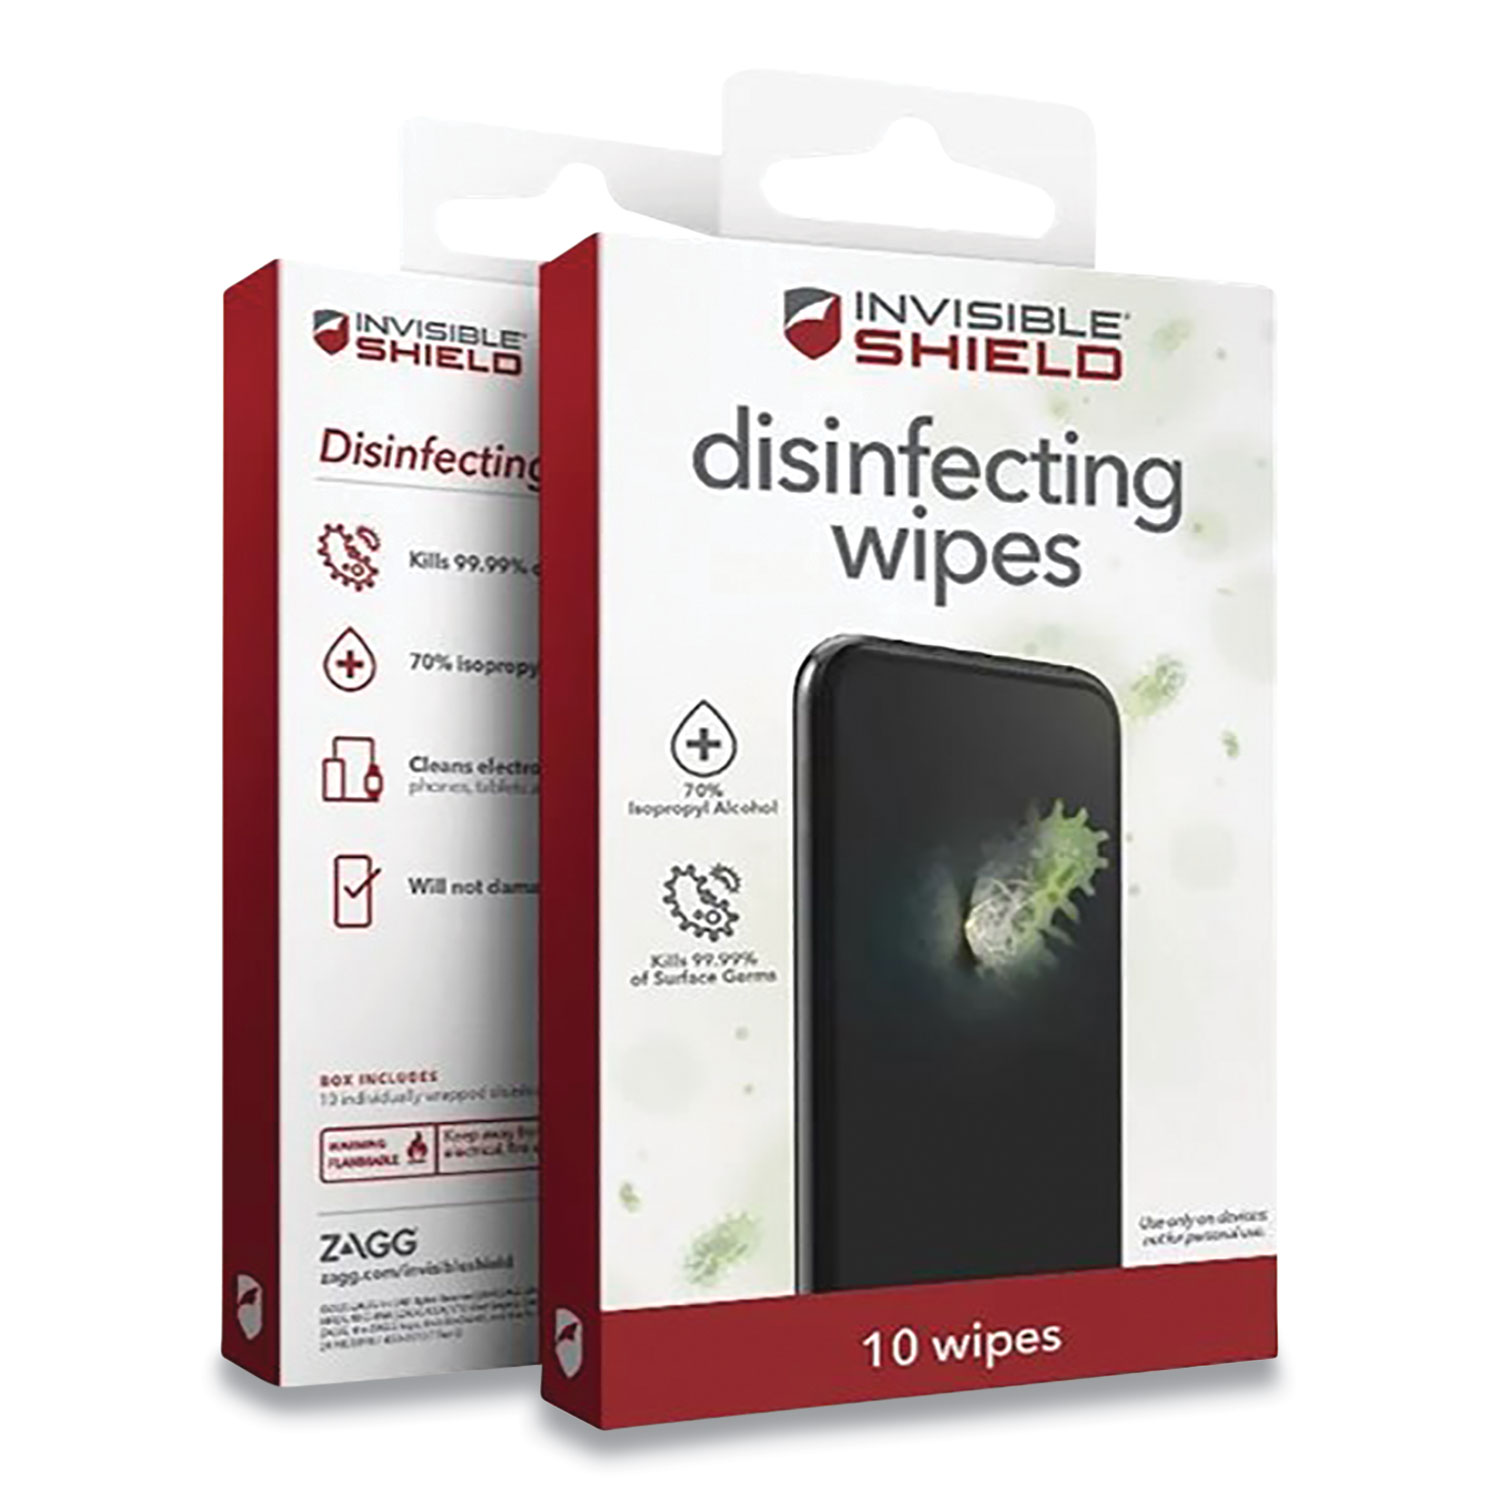 ZAGG® InvisibleShield Disinfecting Wipes for Electronic Devices, Spun Fiber, 3 x 3, 10/Pack